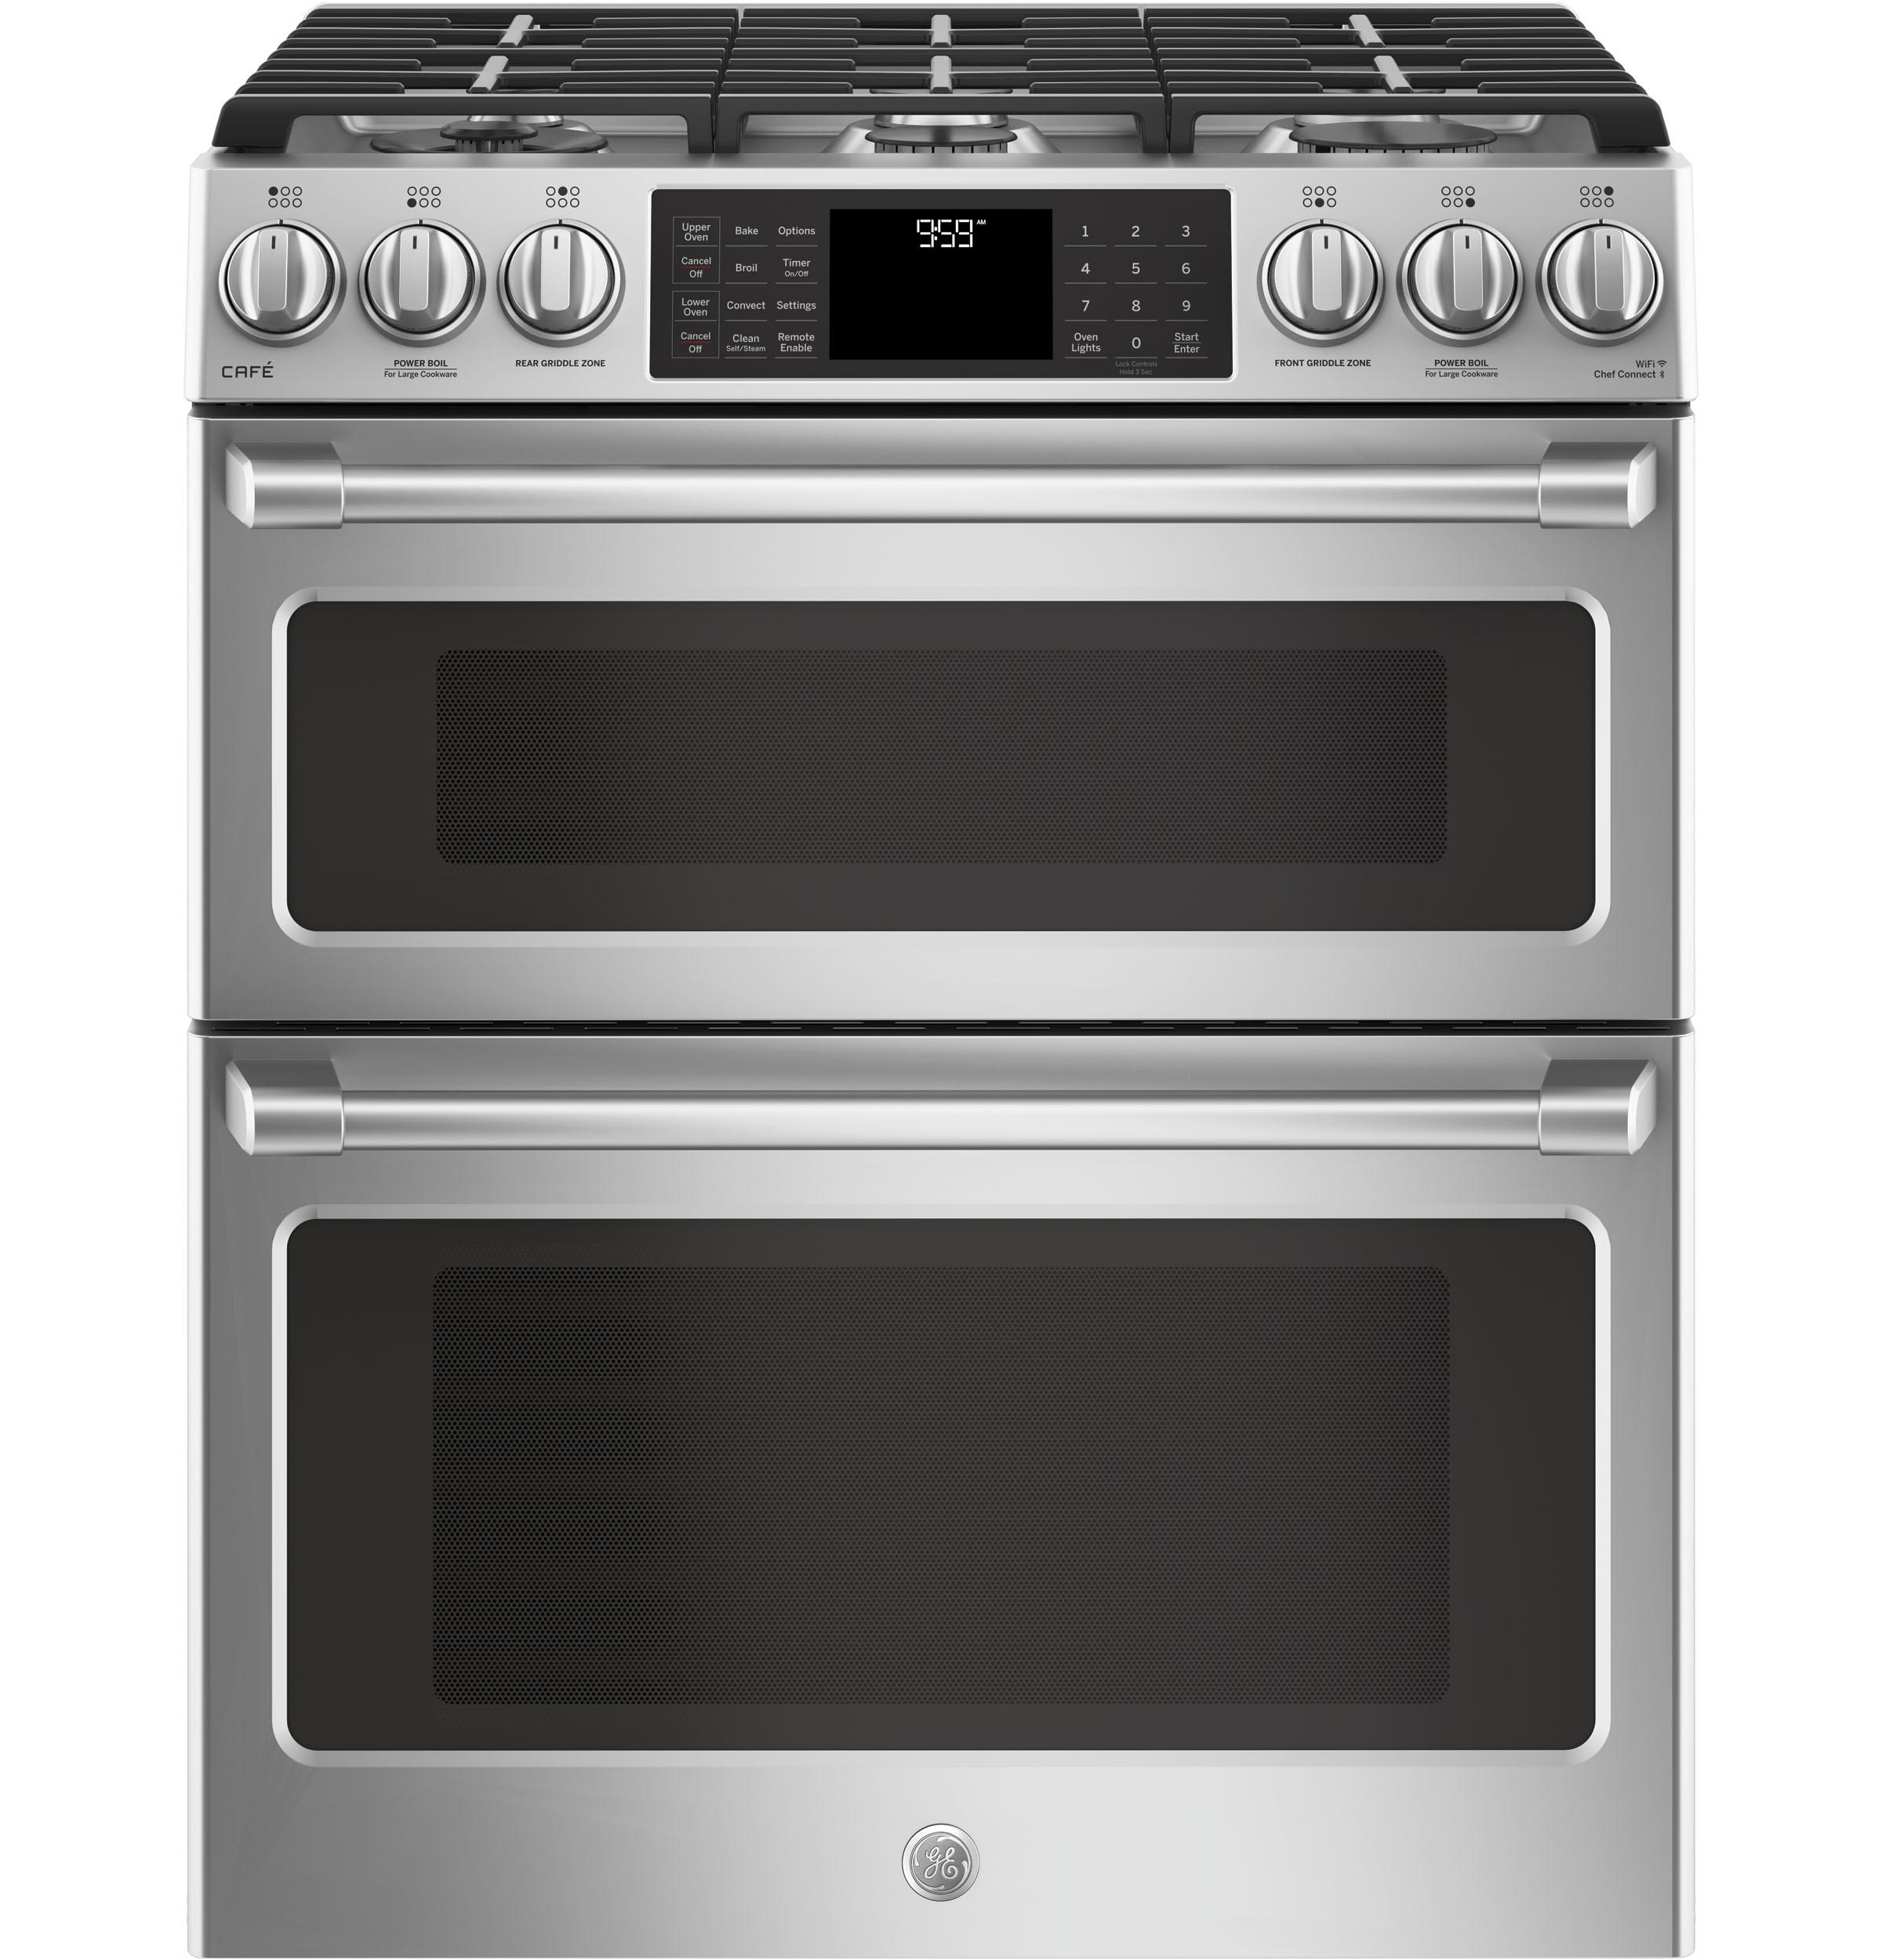 "GE Caf(eback) Series 30"" Slide-In Front Control Gas Double Oven with Convection Range